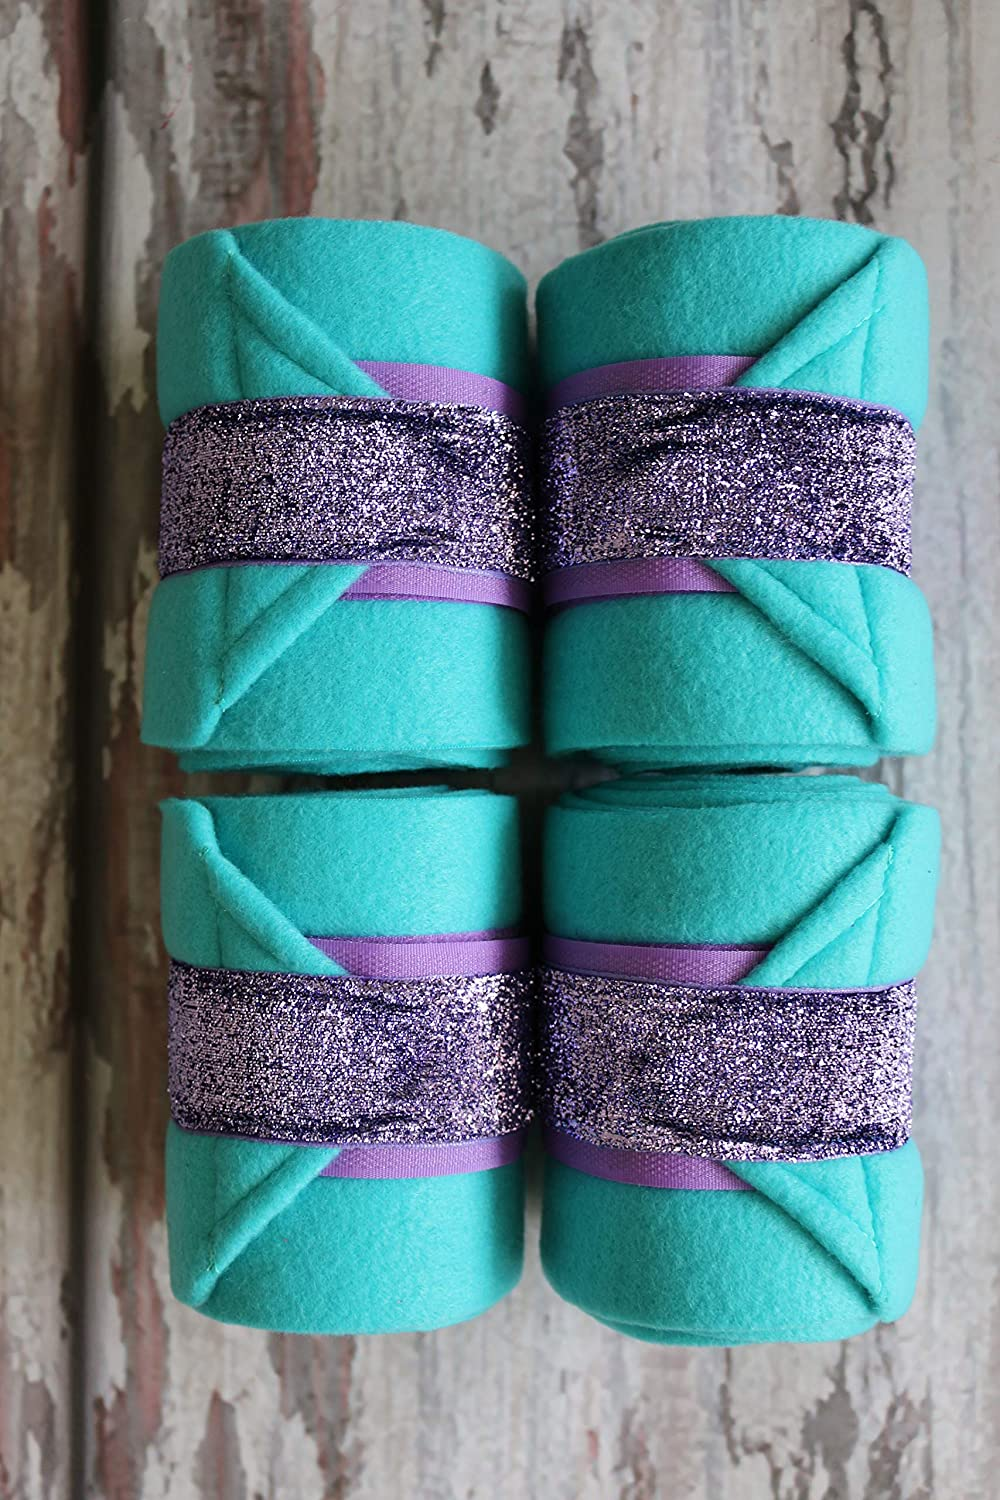 Polo Wraps//Stable Wraps Set of 4 Turquoise Base Purple Glitter